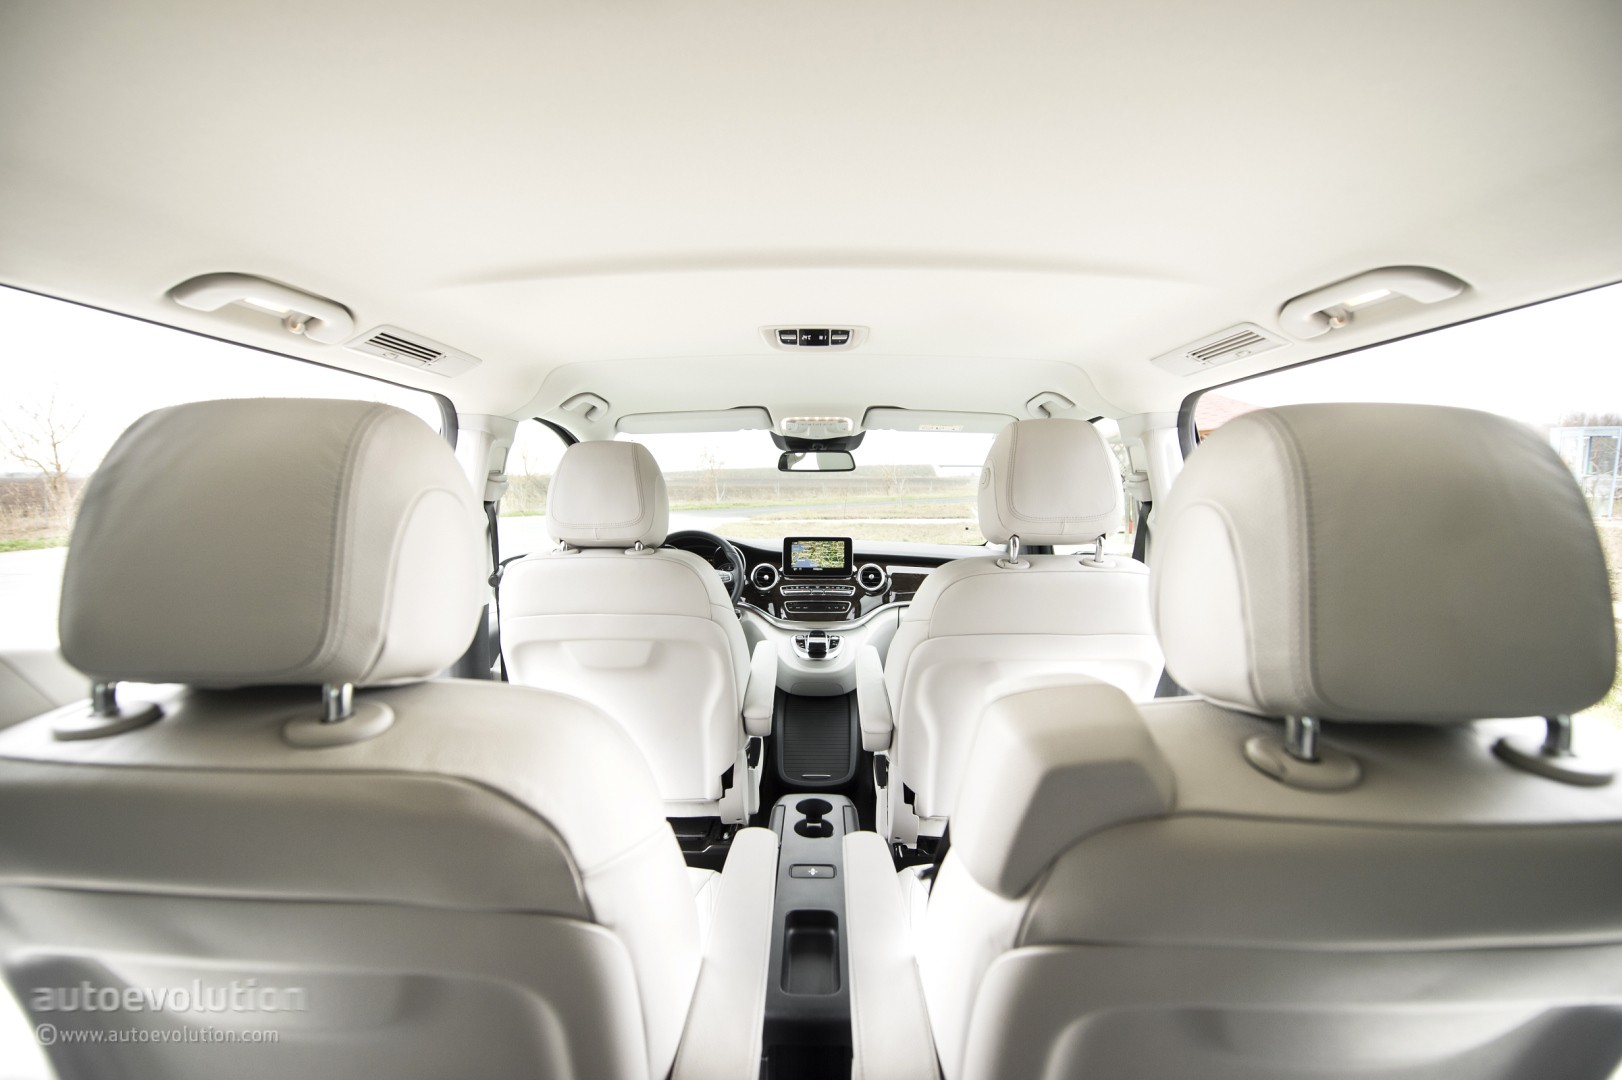 marvelous-desig-of-the-white-seats-added-with-white-ceiling-as-the-mercedes-benz-v-class-2015-interior